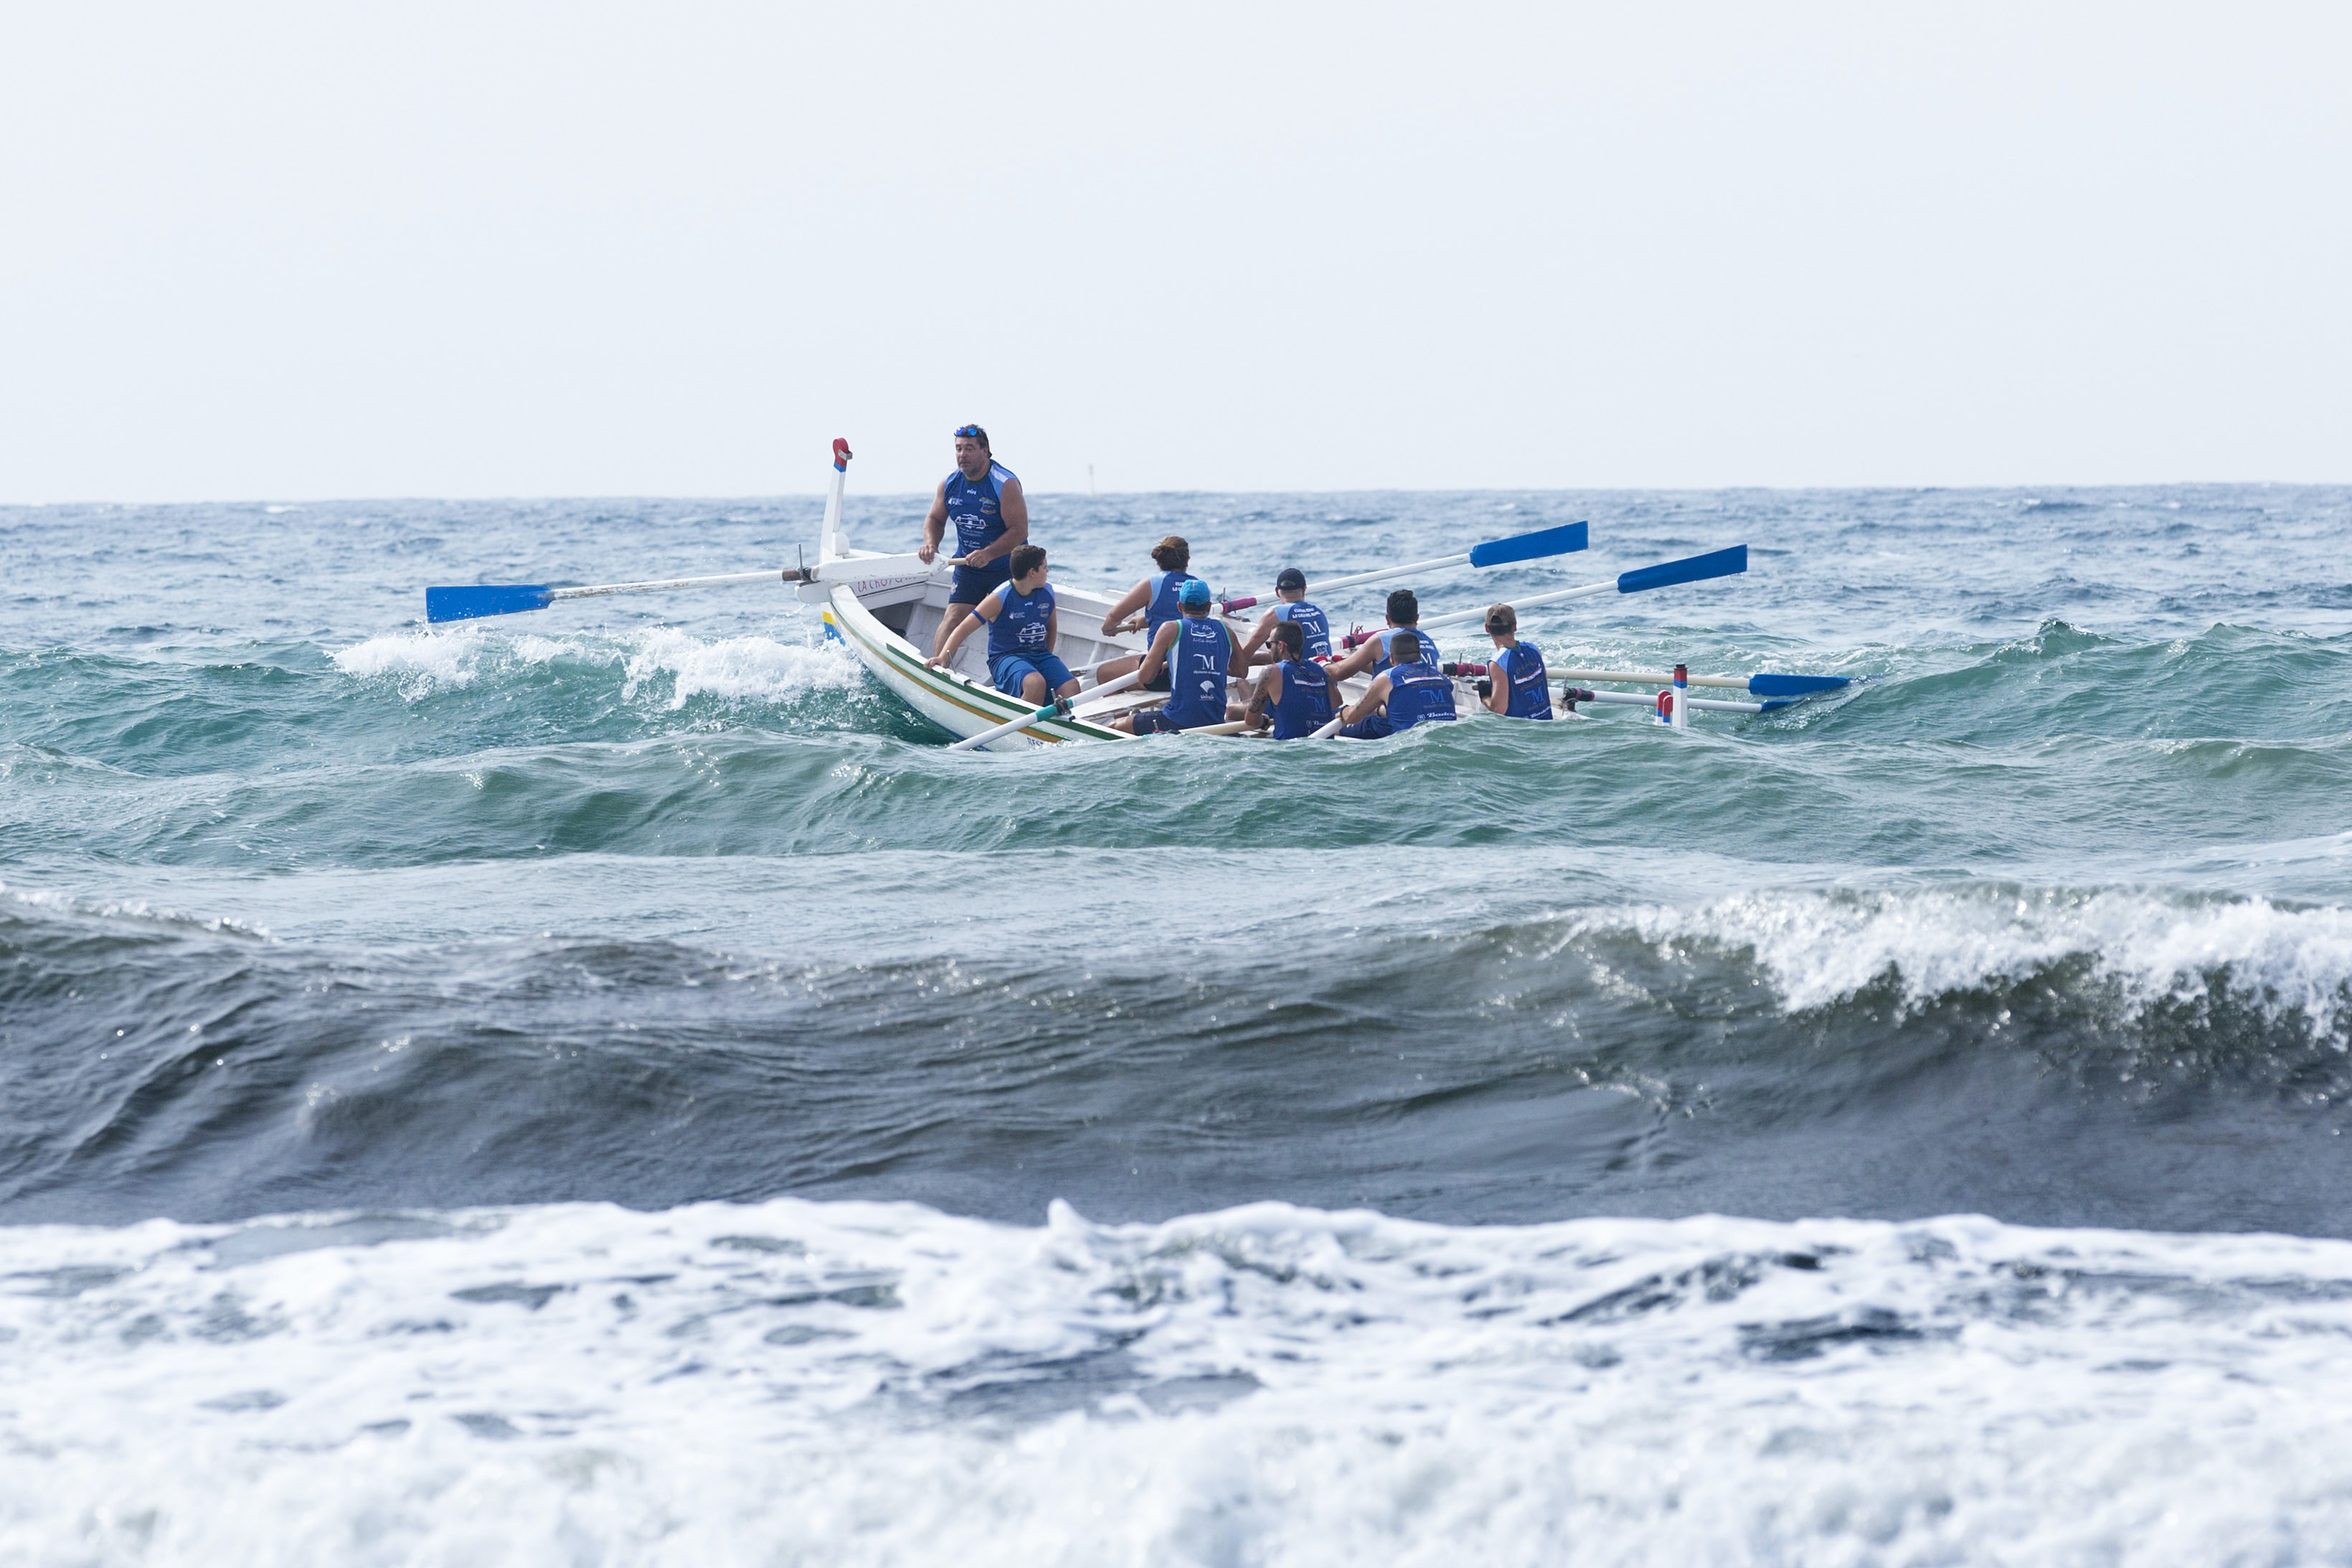 group of men boating on violent waves during daytime